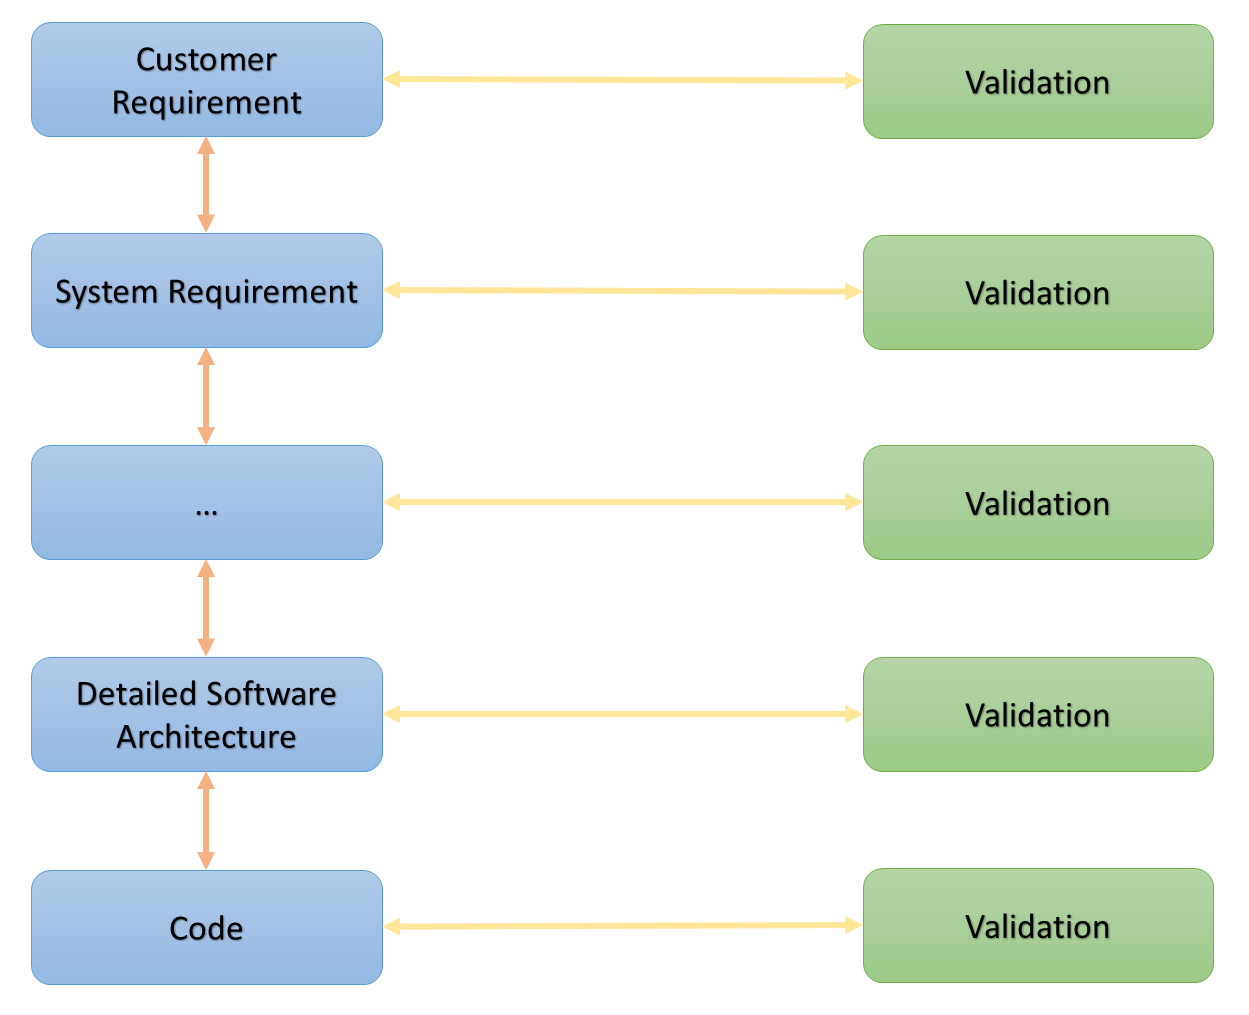 (Customer Requirements <-> System Requirements <->Detailed Software Architecture <-> Code) <-> Validation